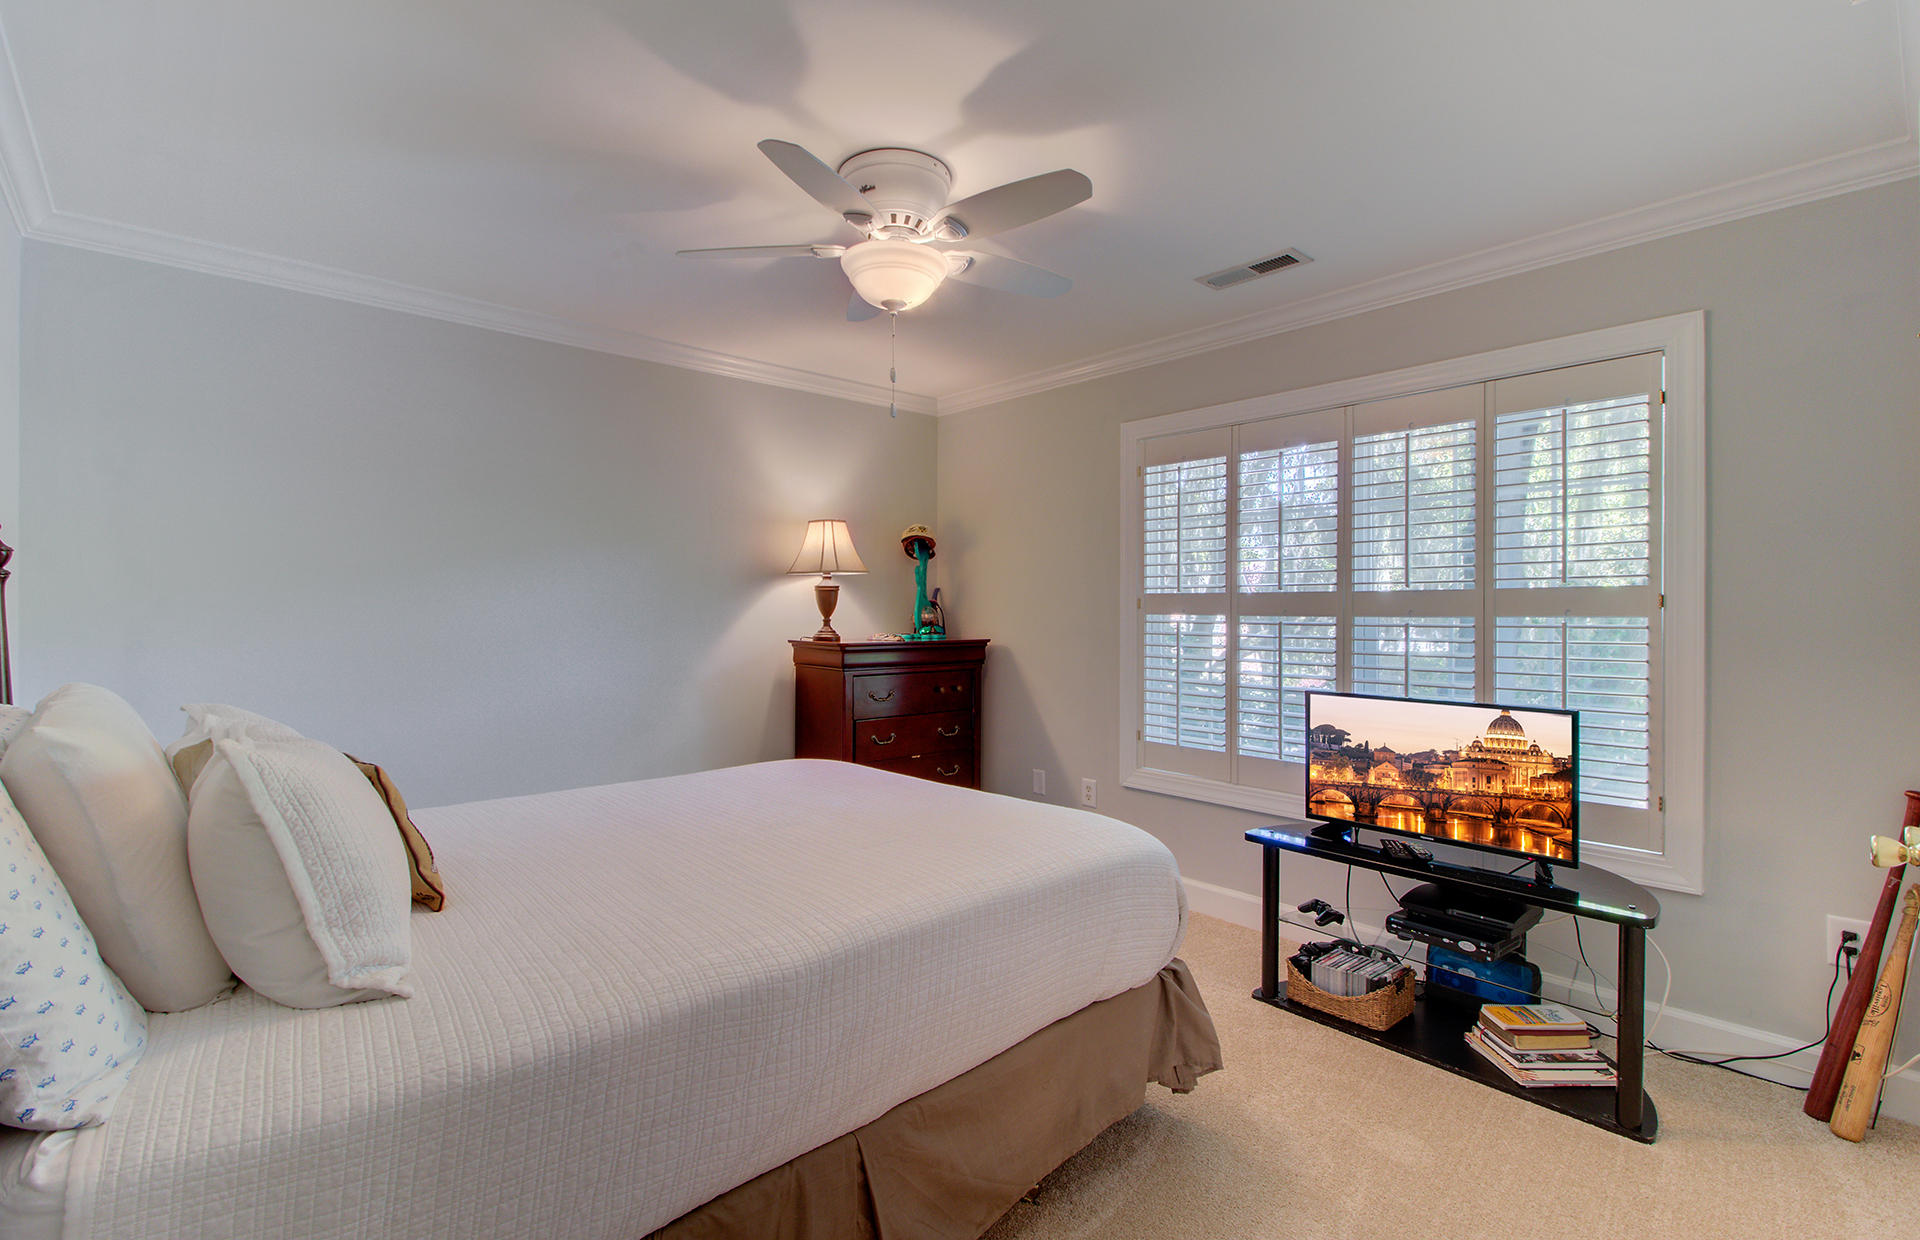 Parrot Bluff Homes For Sale - 872 Treasury Bend, Charleston, SC - 7